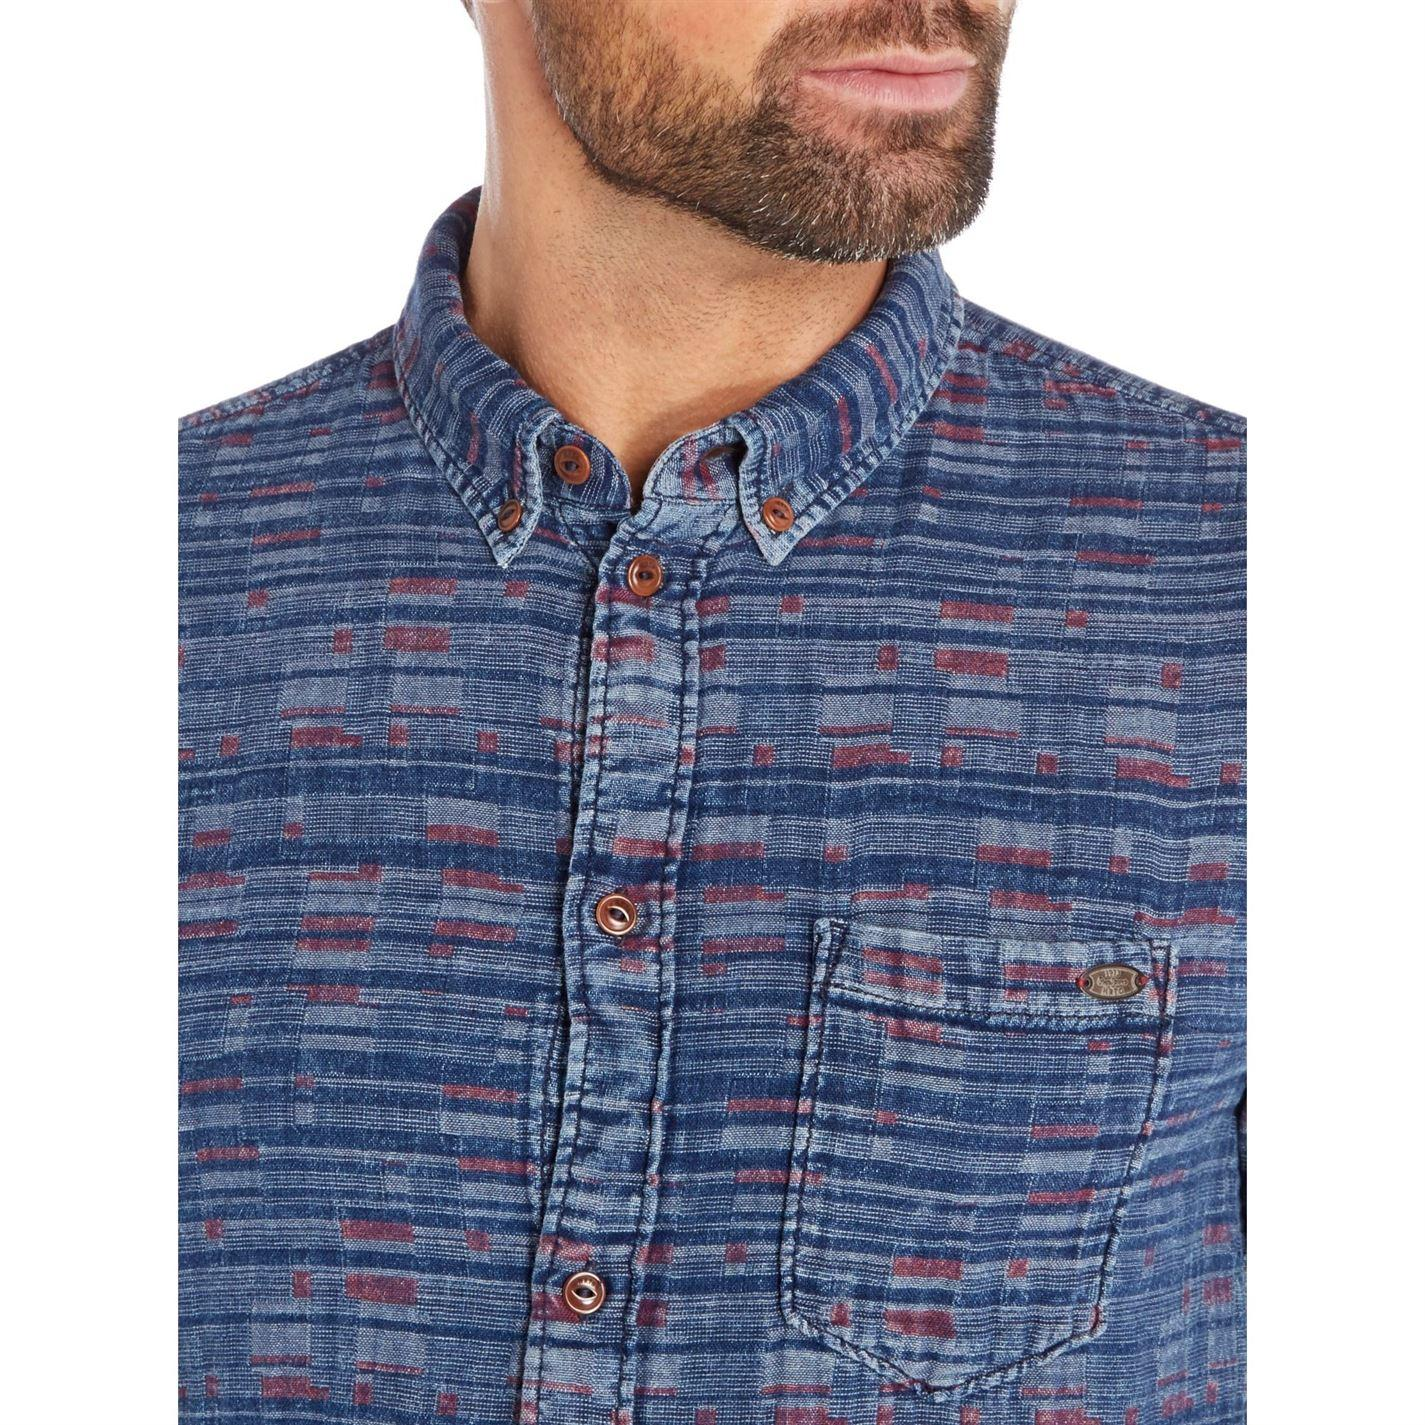 Pepe Jeans Gary Long Sleeve Shirt in Indigo (Blue) for Men